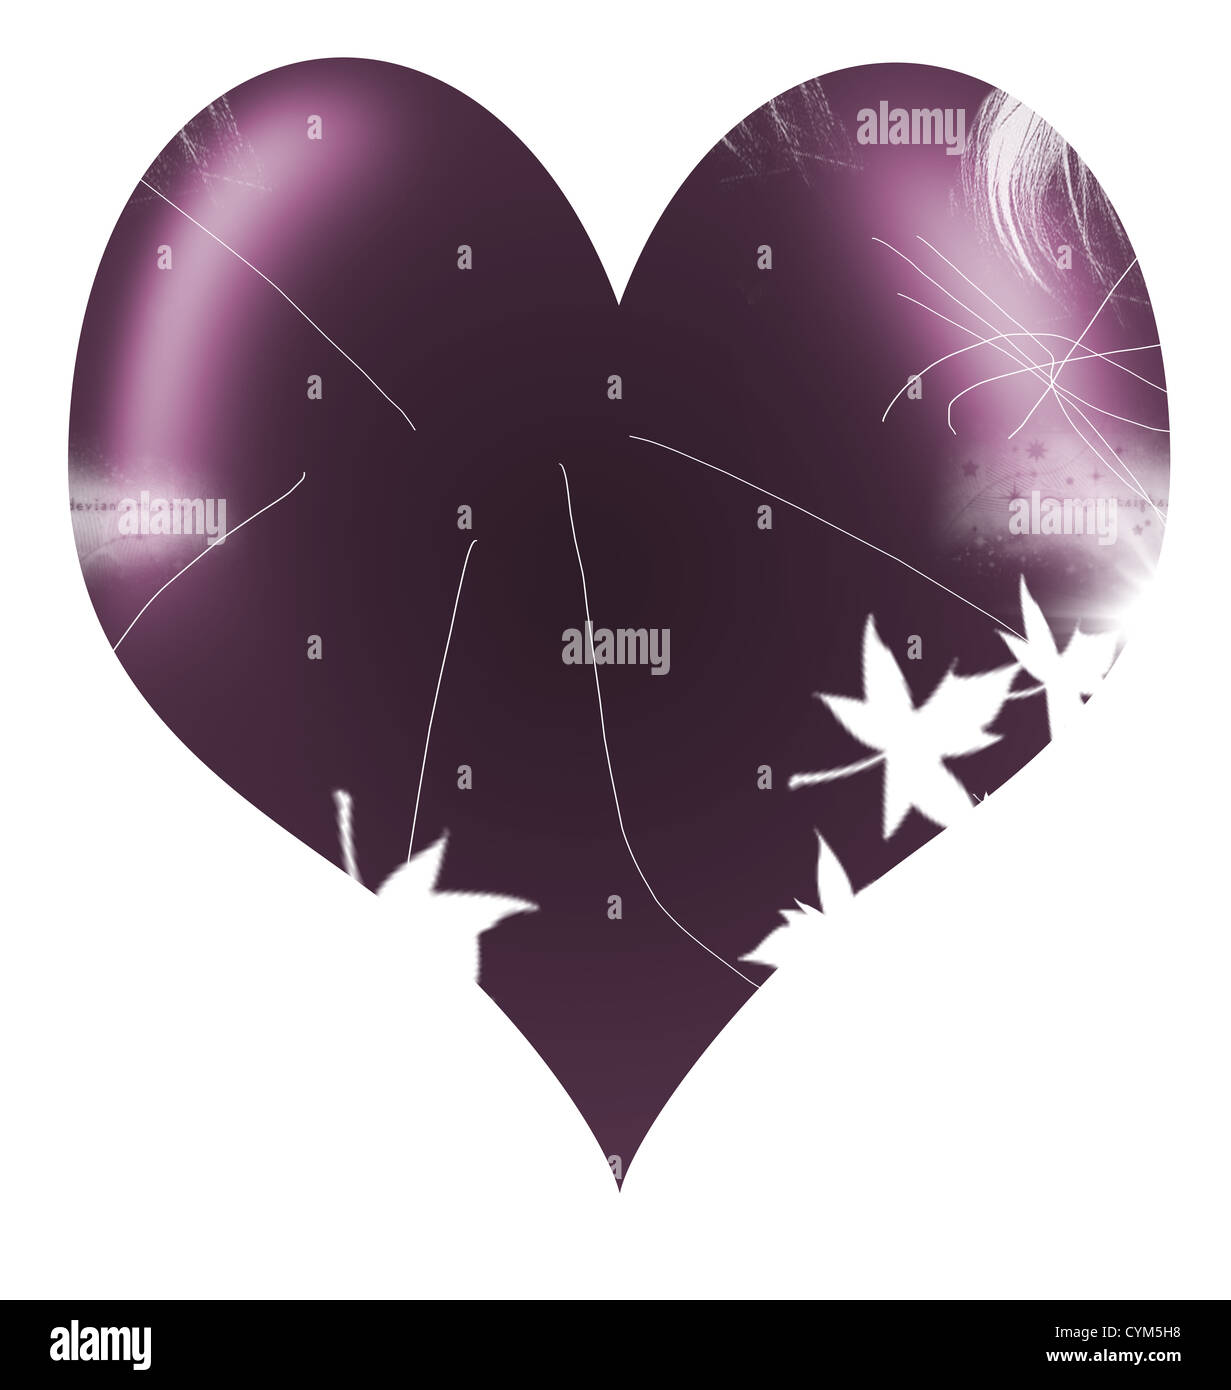 violet abstract heart shape ilustration - Stock Image